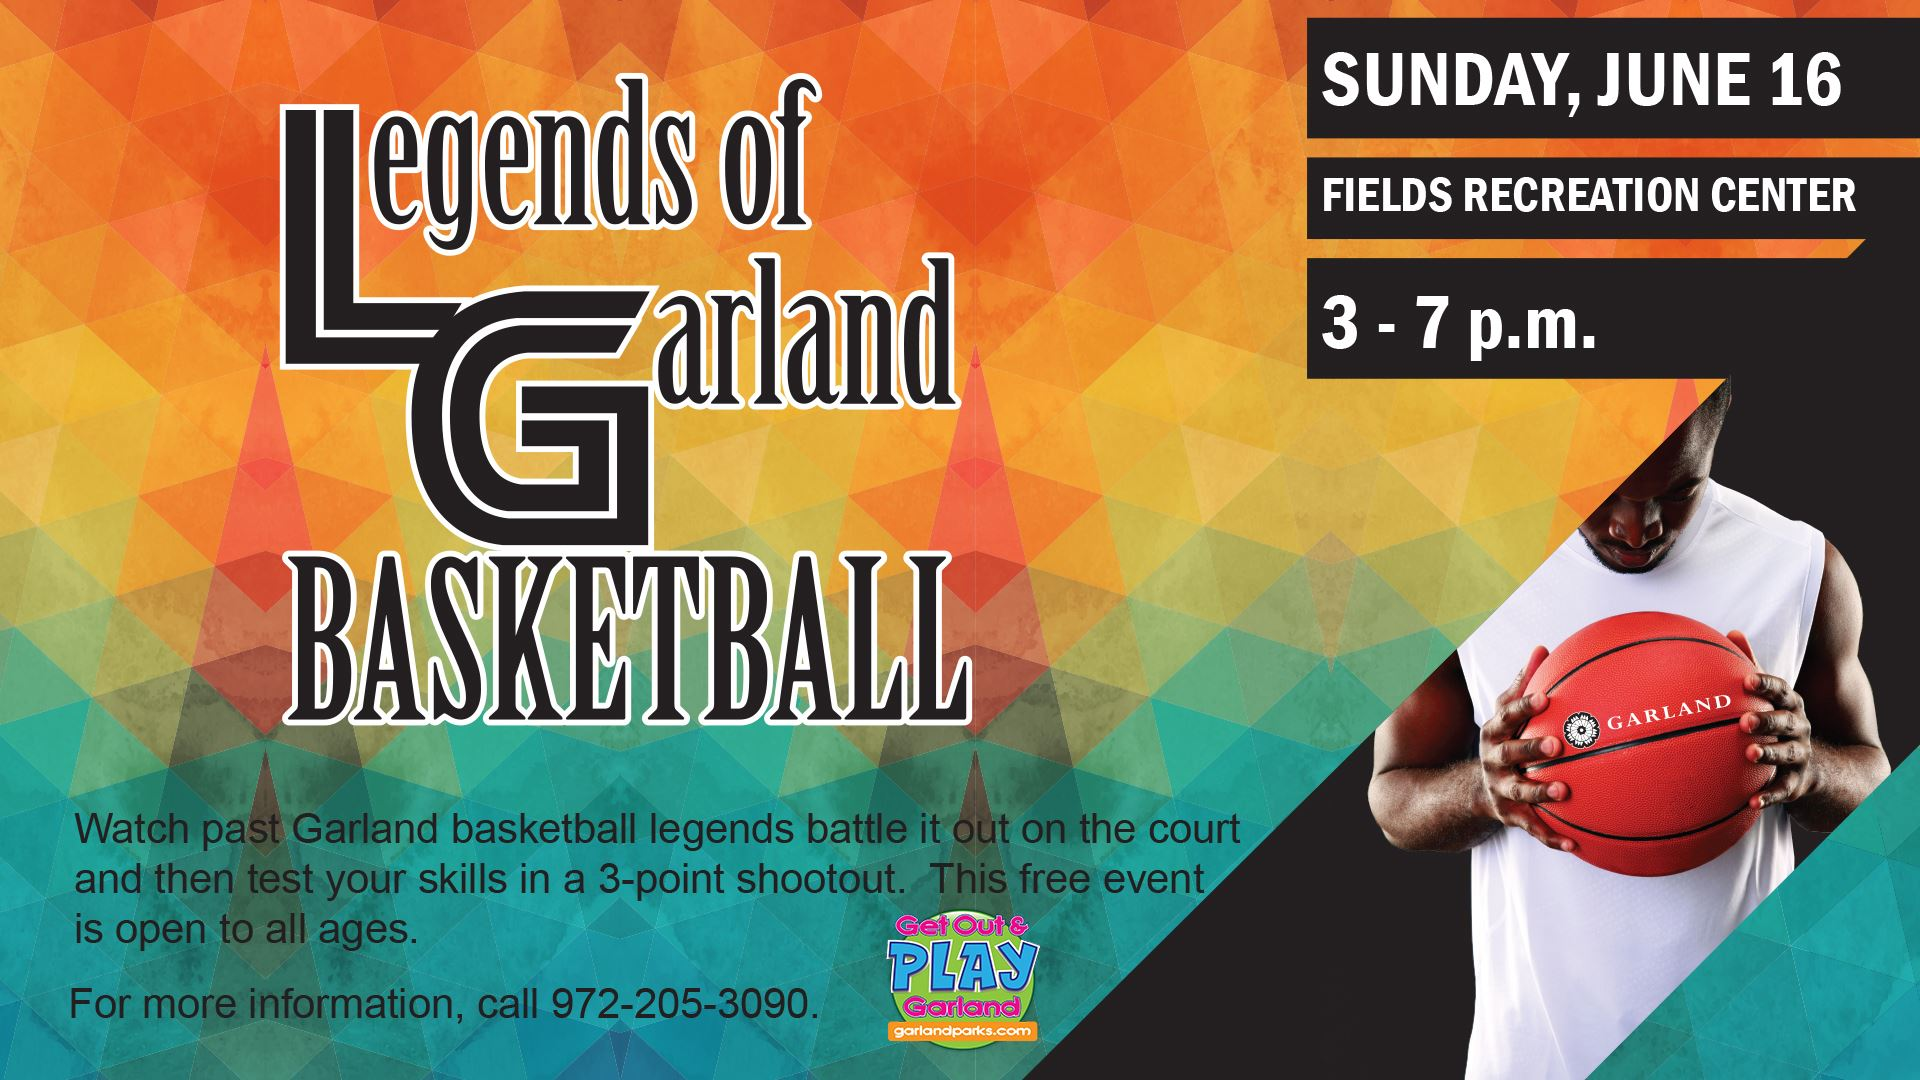 Legends of Basketball event on June 16